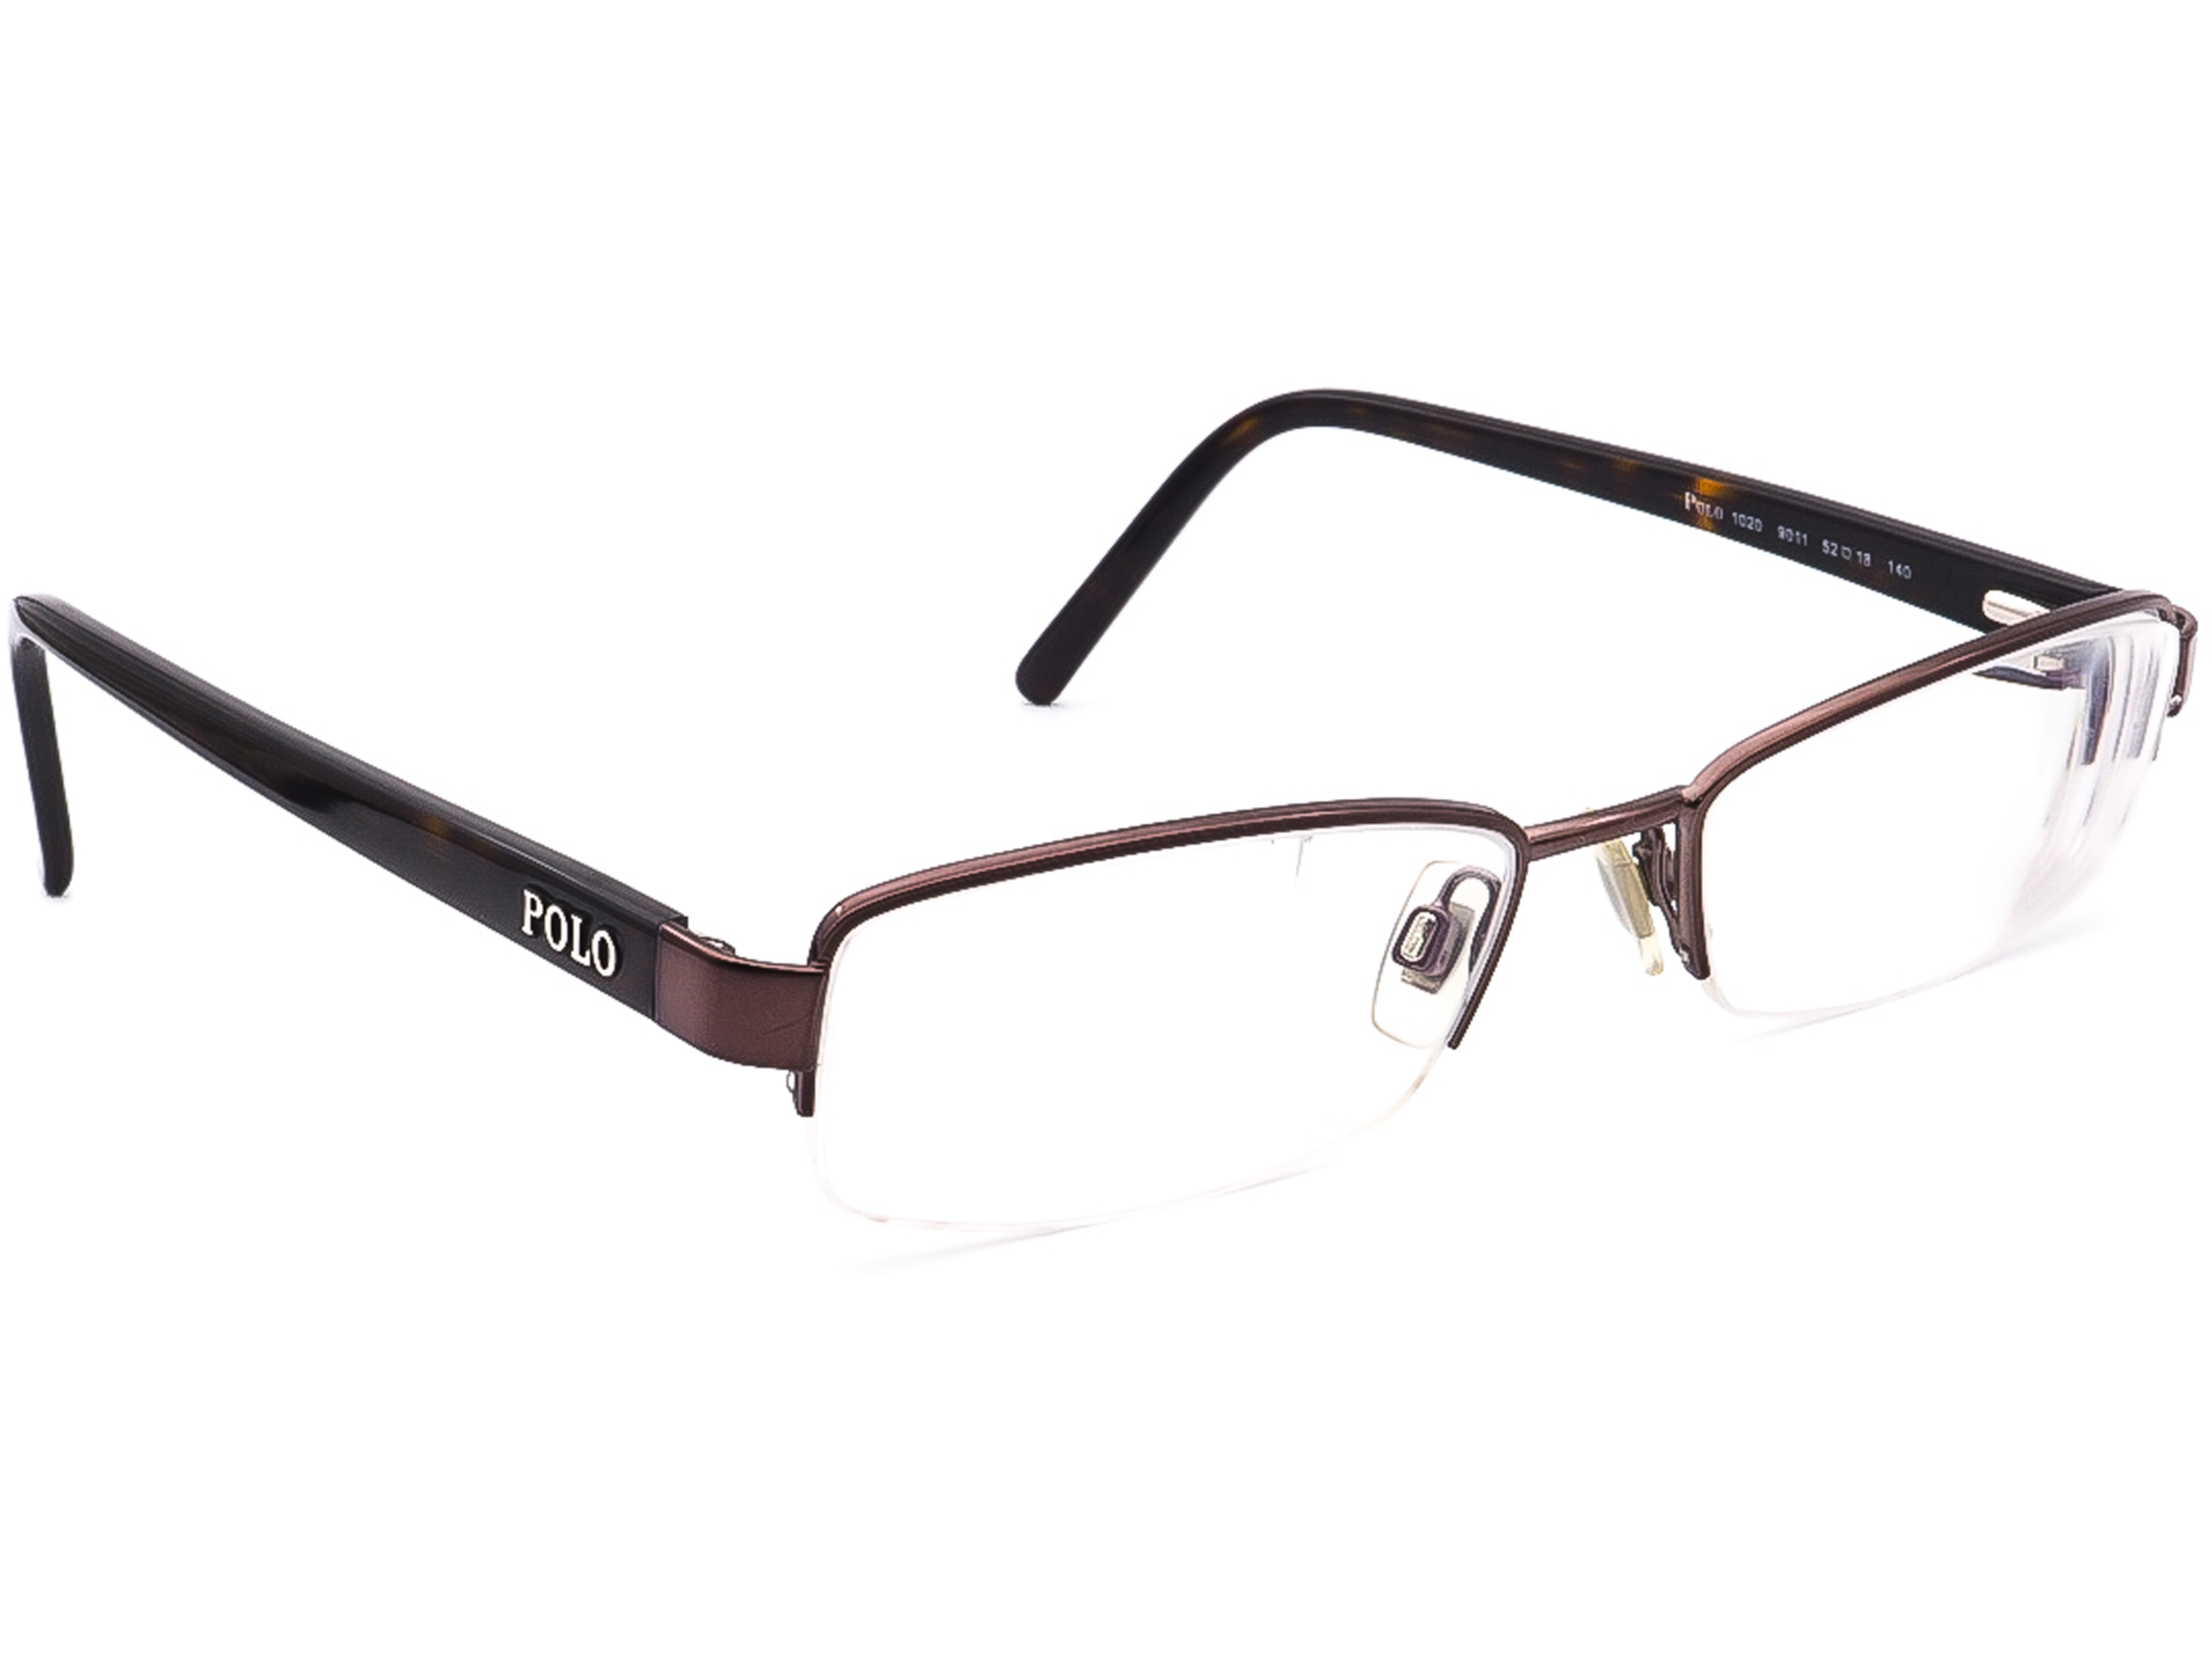 Ralph Lauren Polo 1020 9011 Eyeglasses